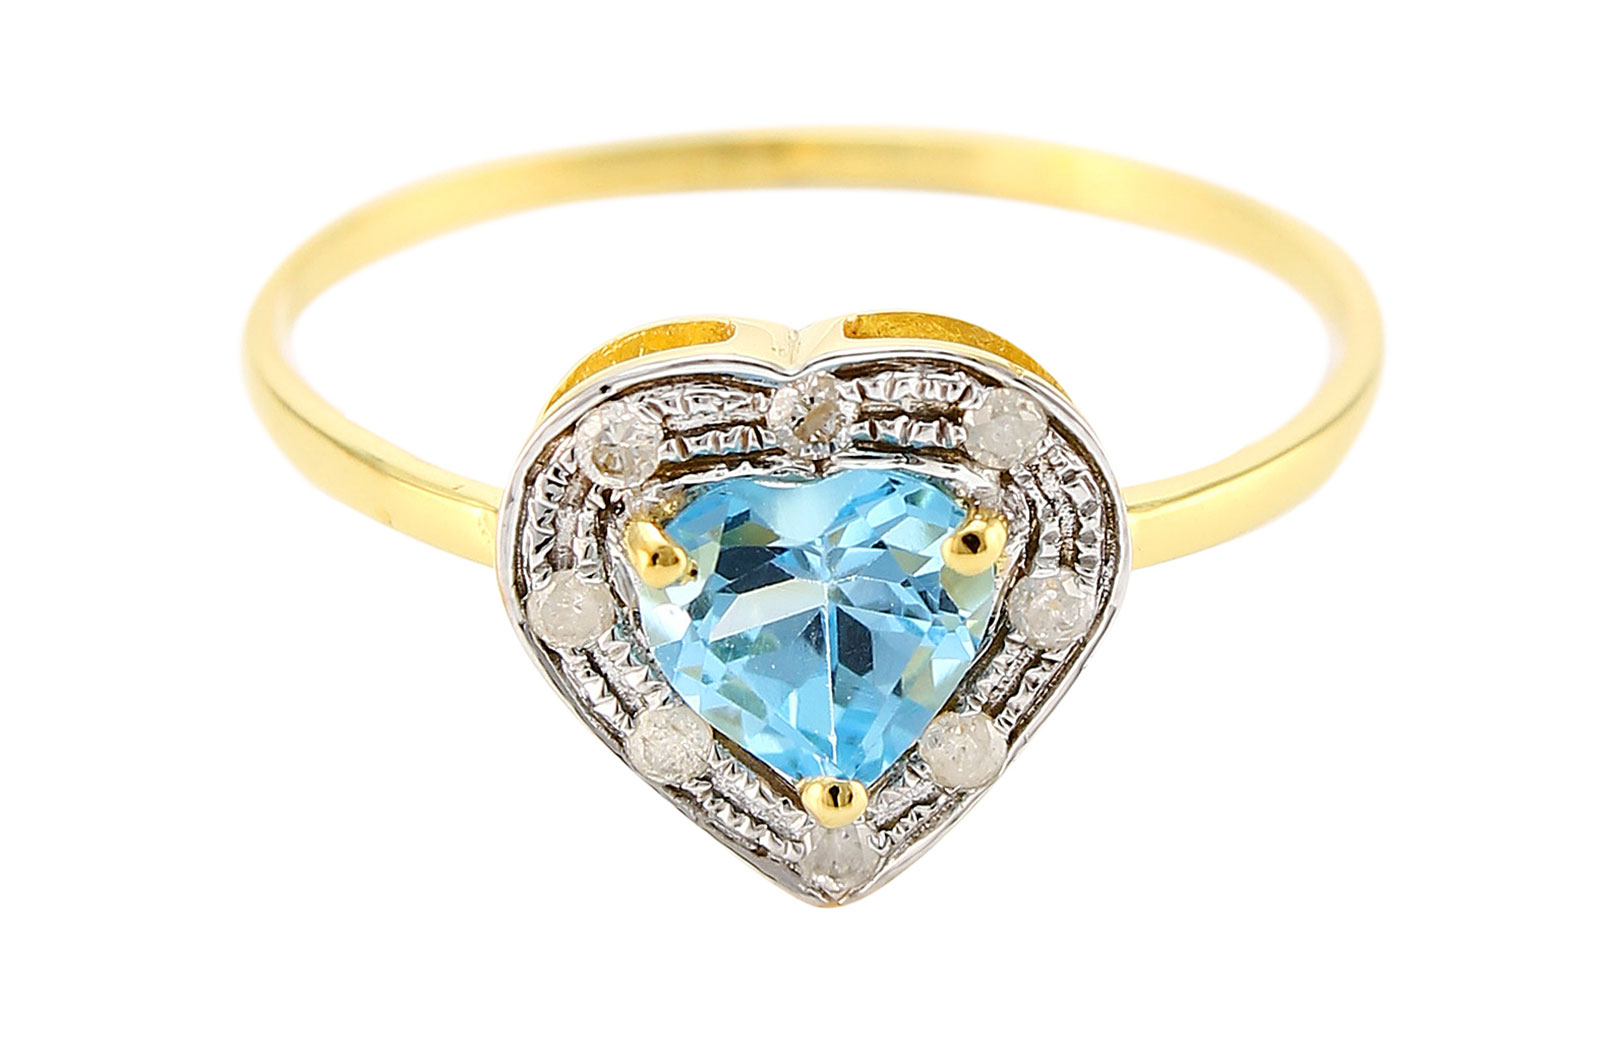 Vera Perla 18K Solid Gold 0.6Ct Genuine Heart Cut Swiss Blue Topaz 0.08Ct Genuine Diamonds Ring